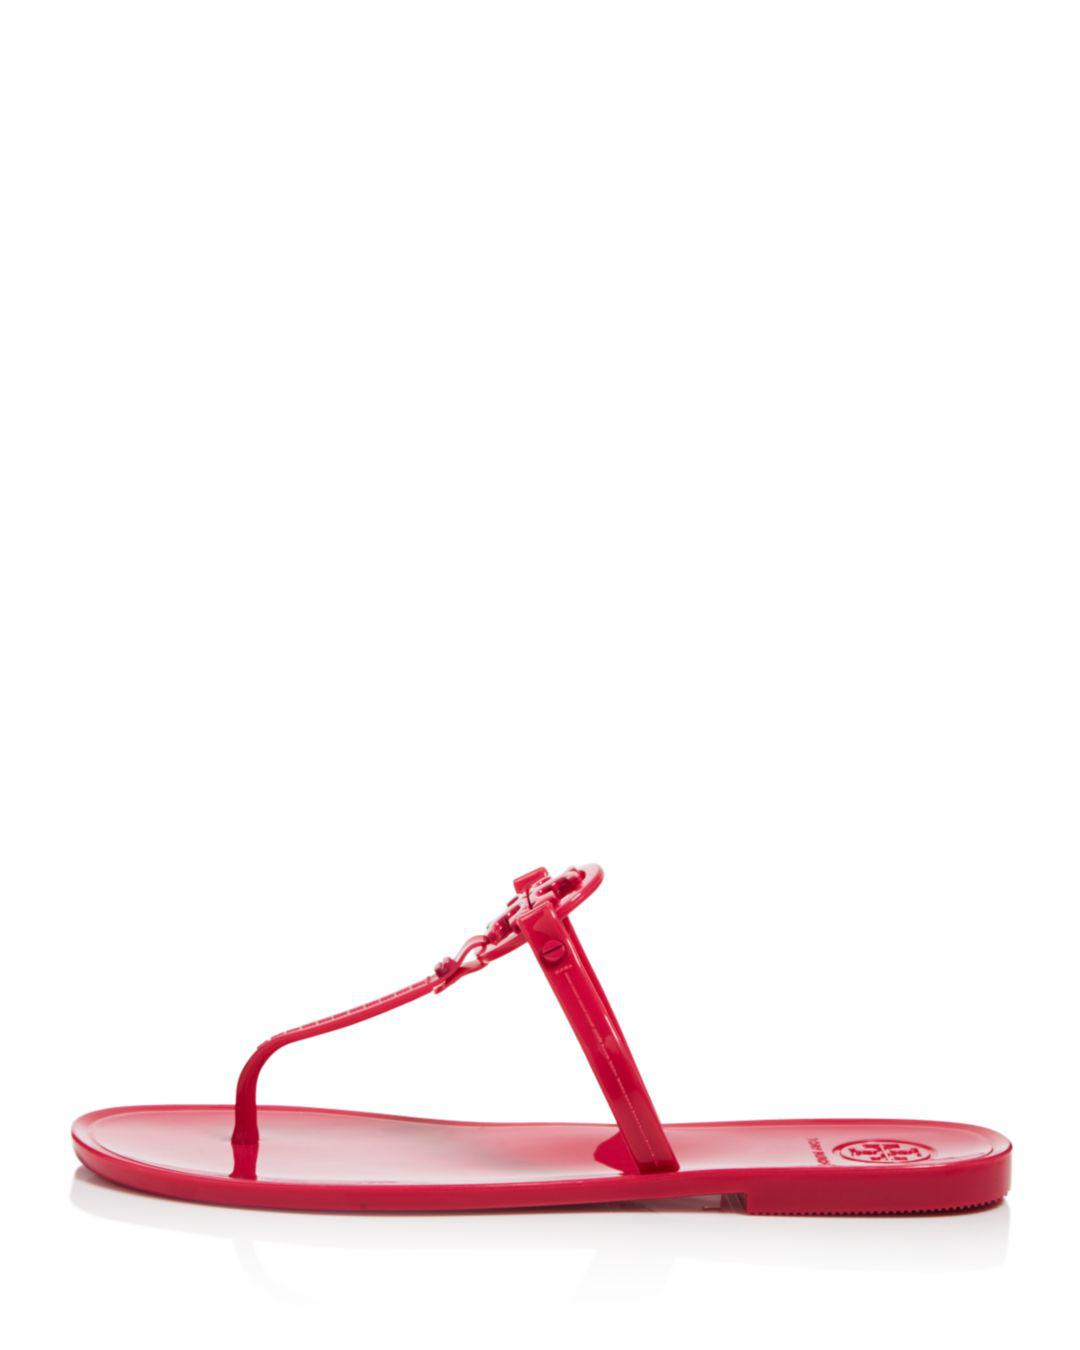 65054177aaee Lyst - Tory Burch Women s Mini Miller Thong Sandals - Save 20%